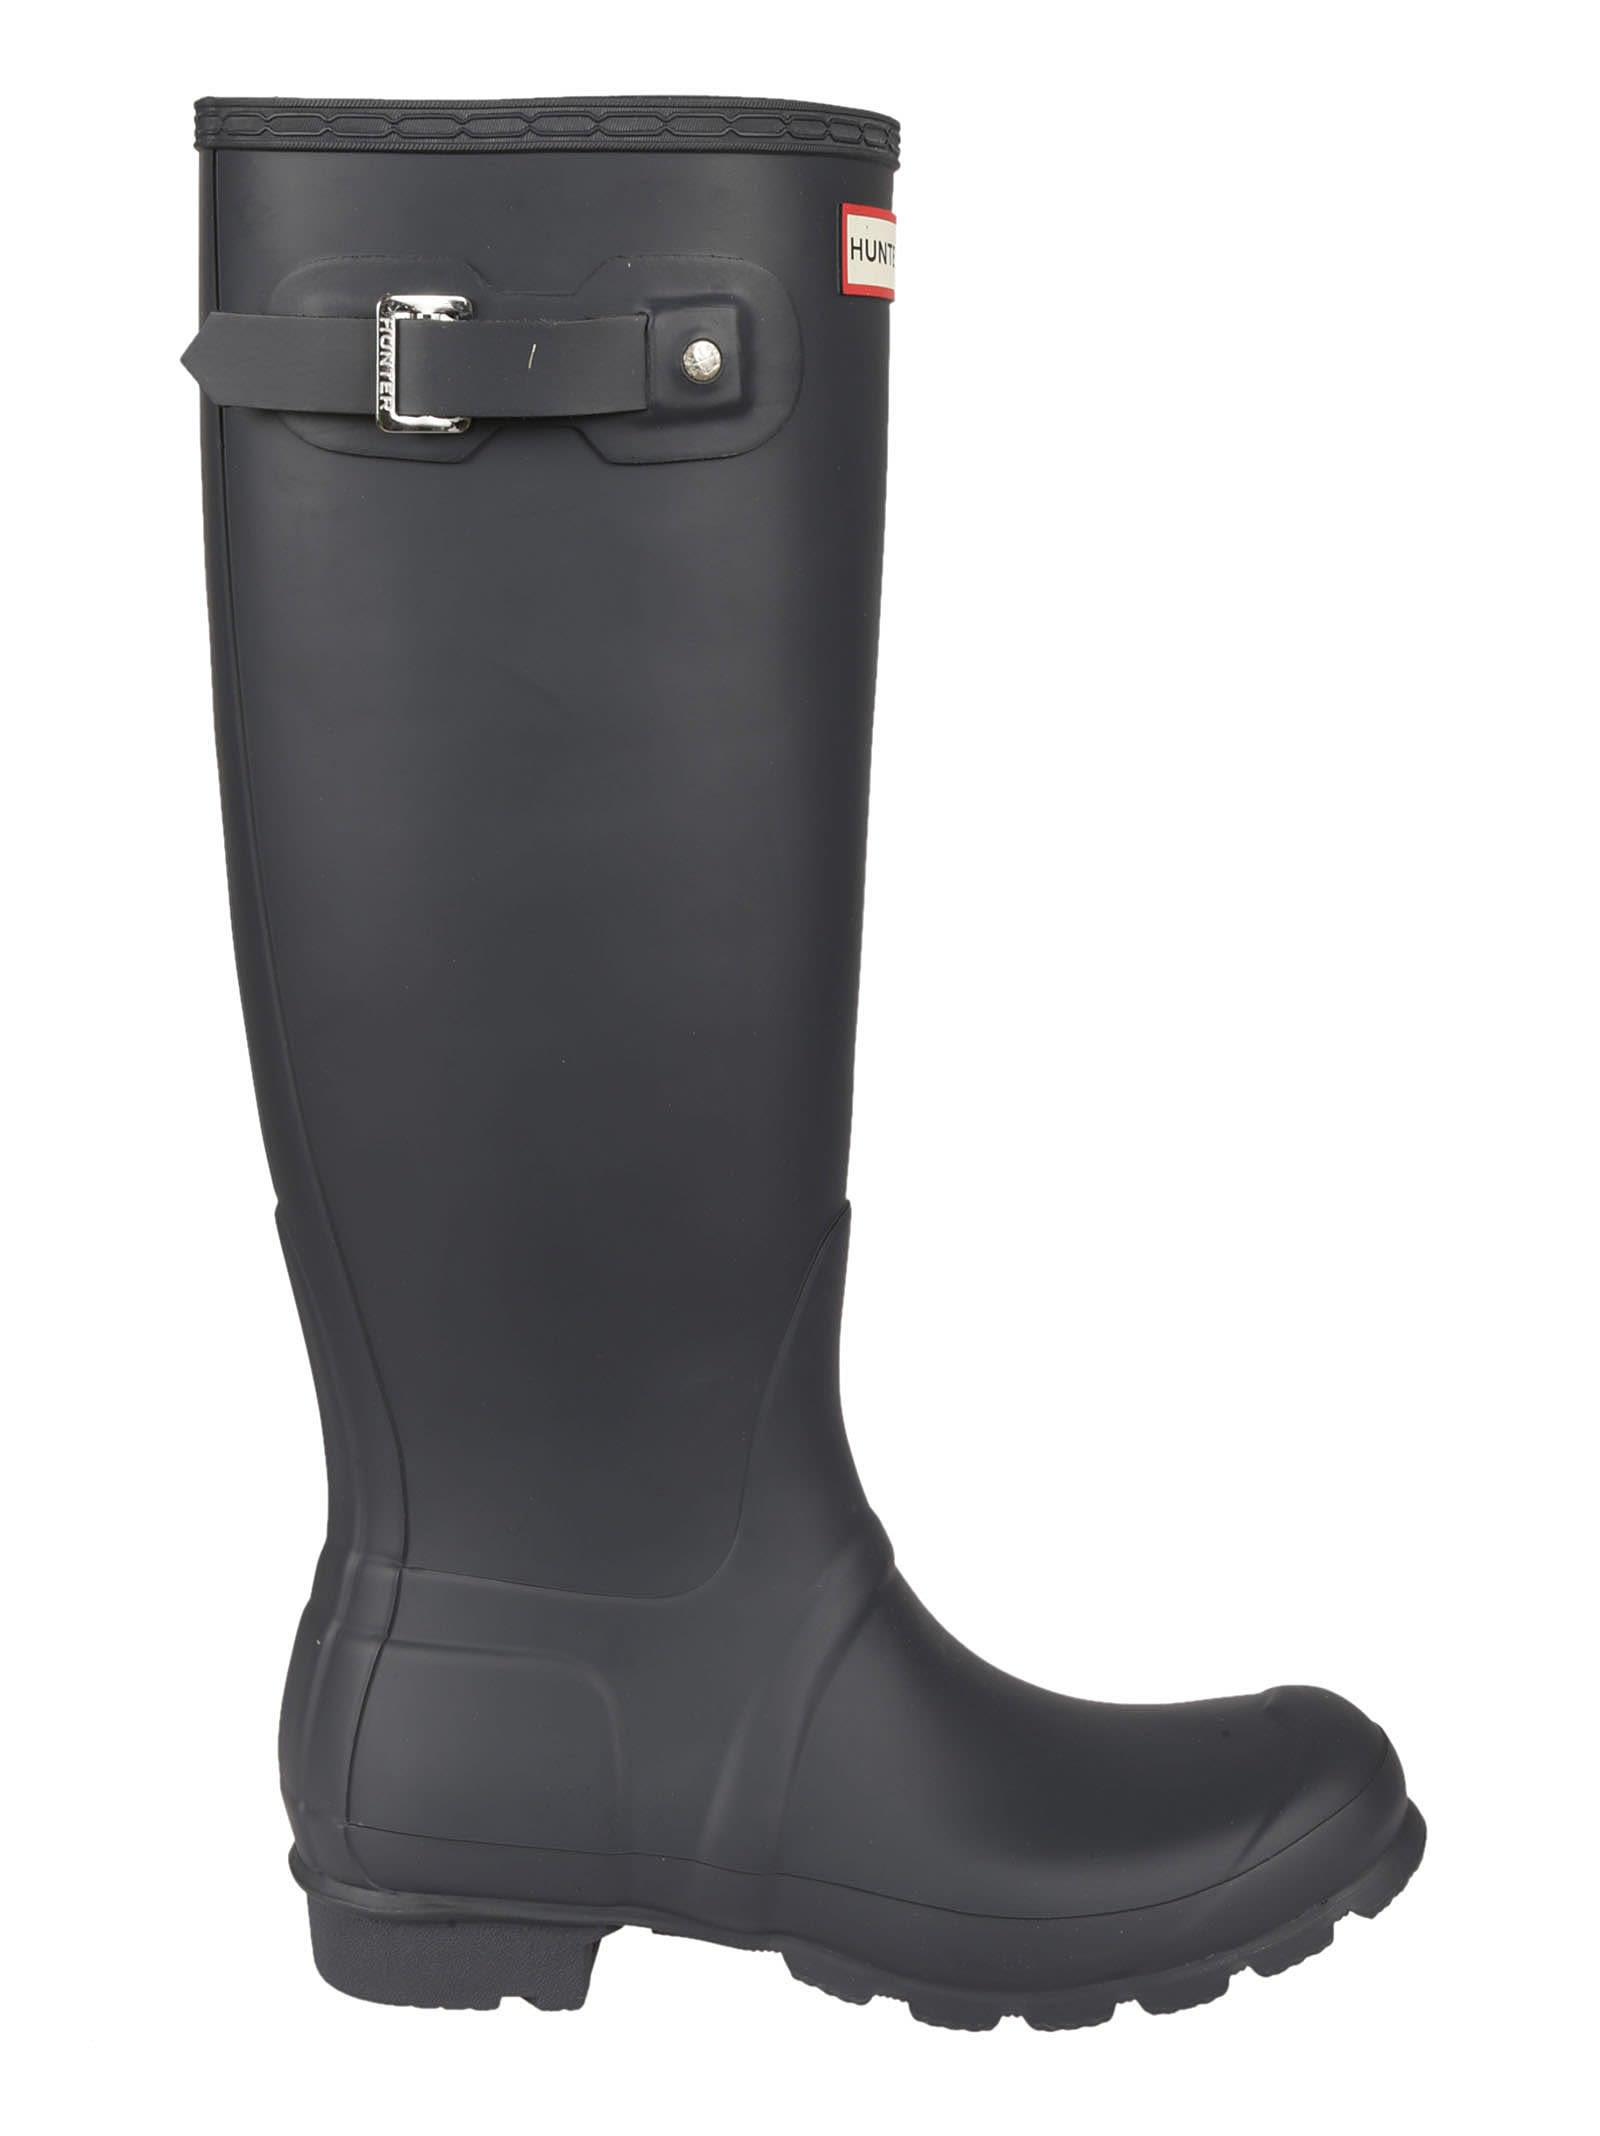 Navy Tall Wellington Rain Boots